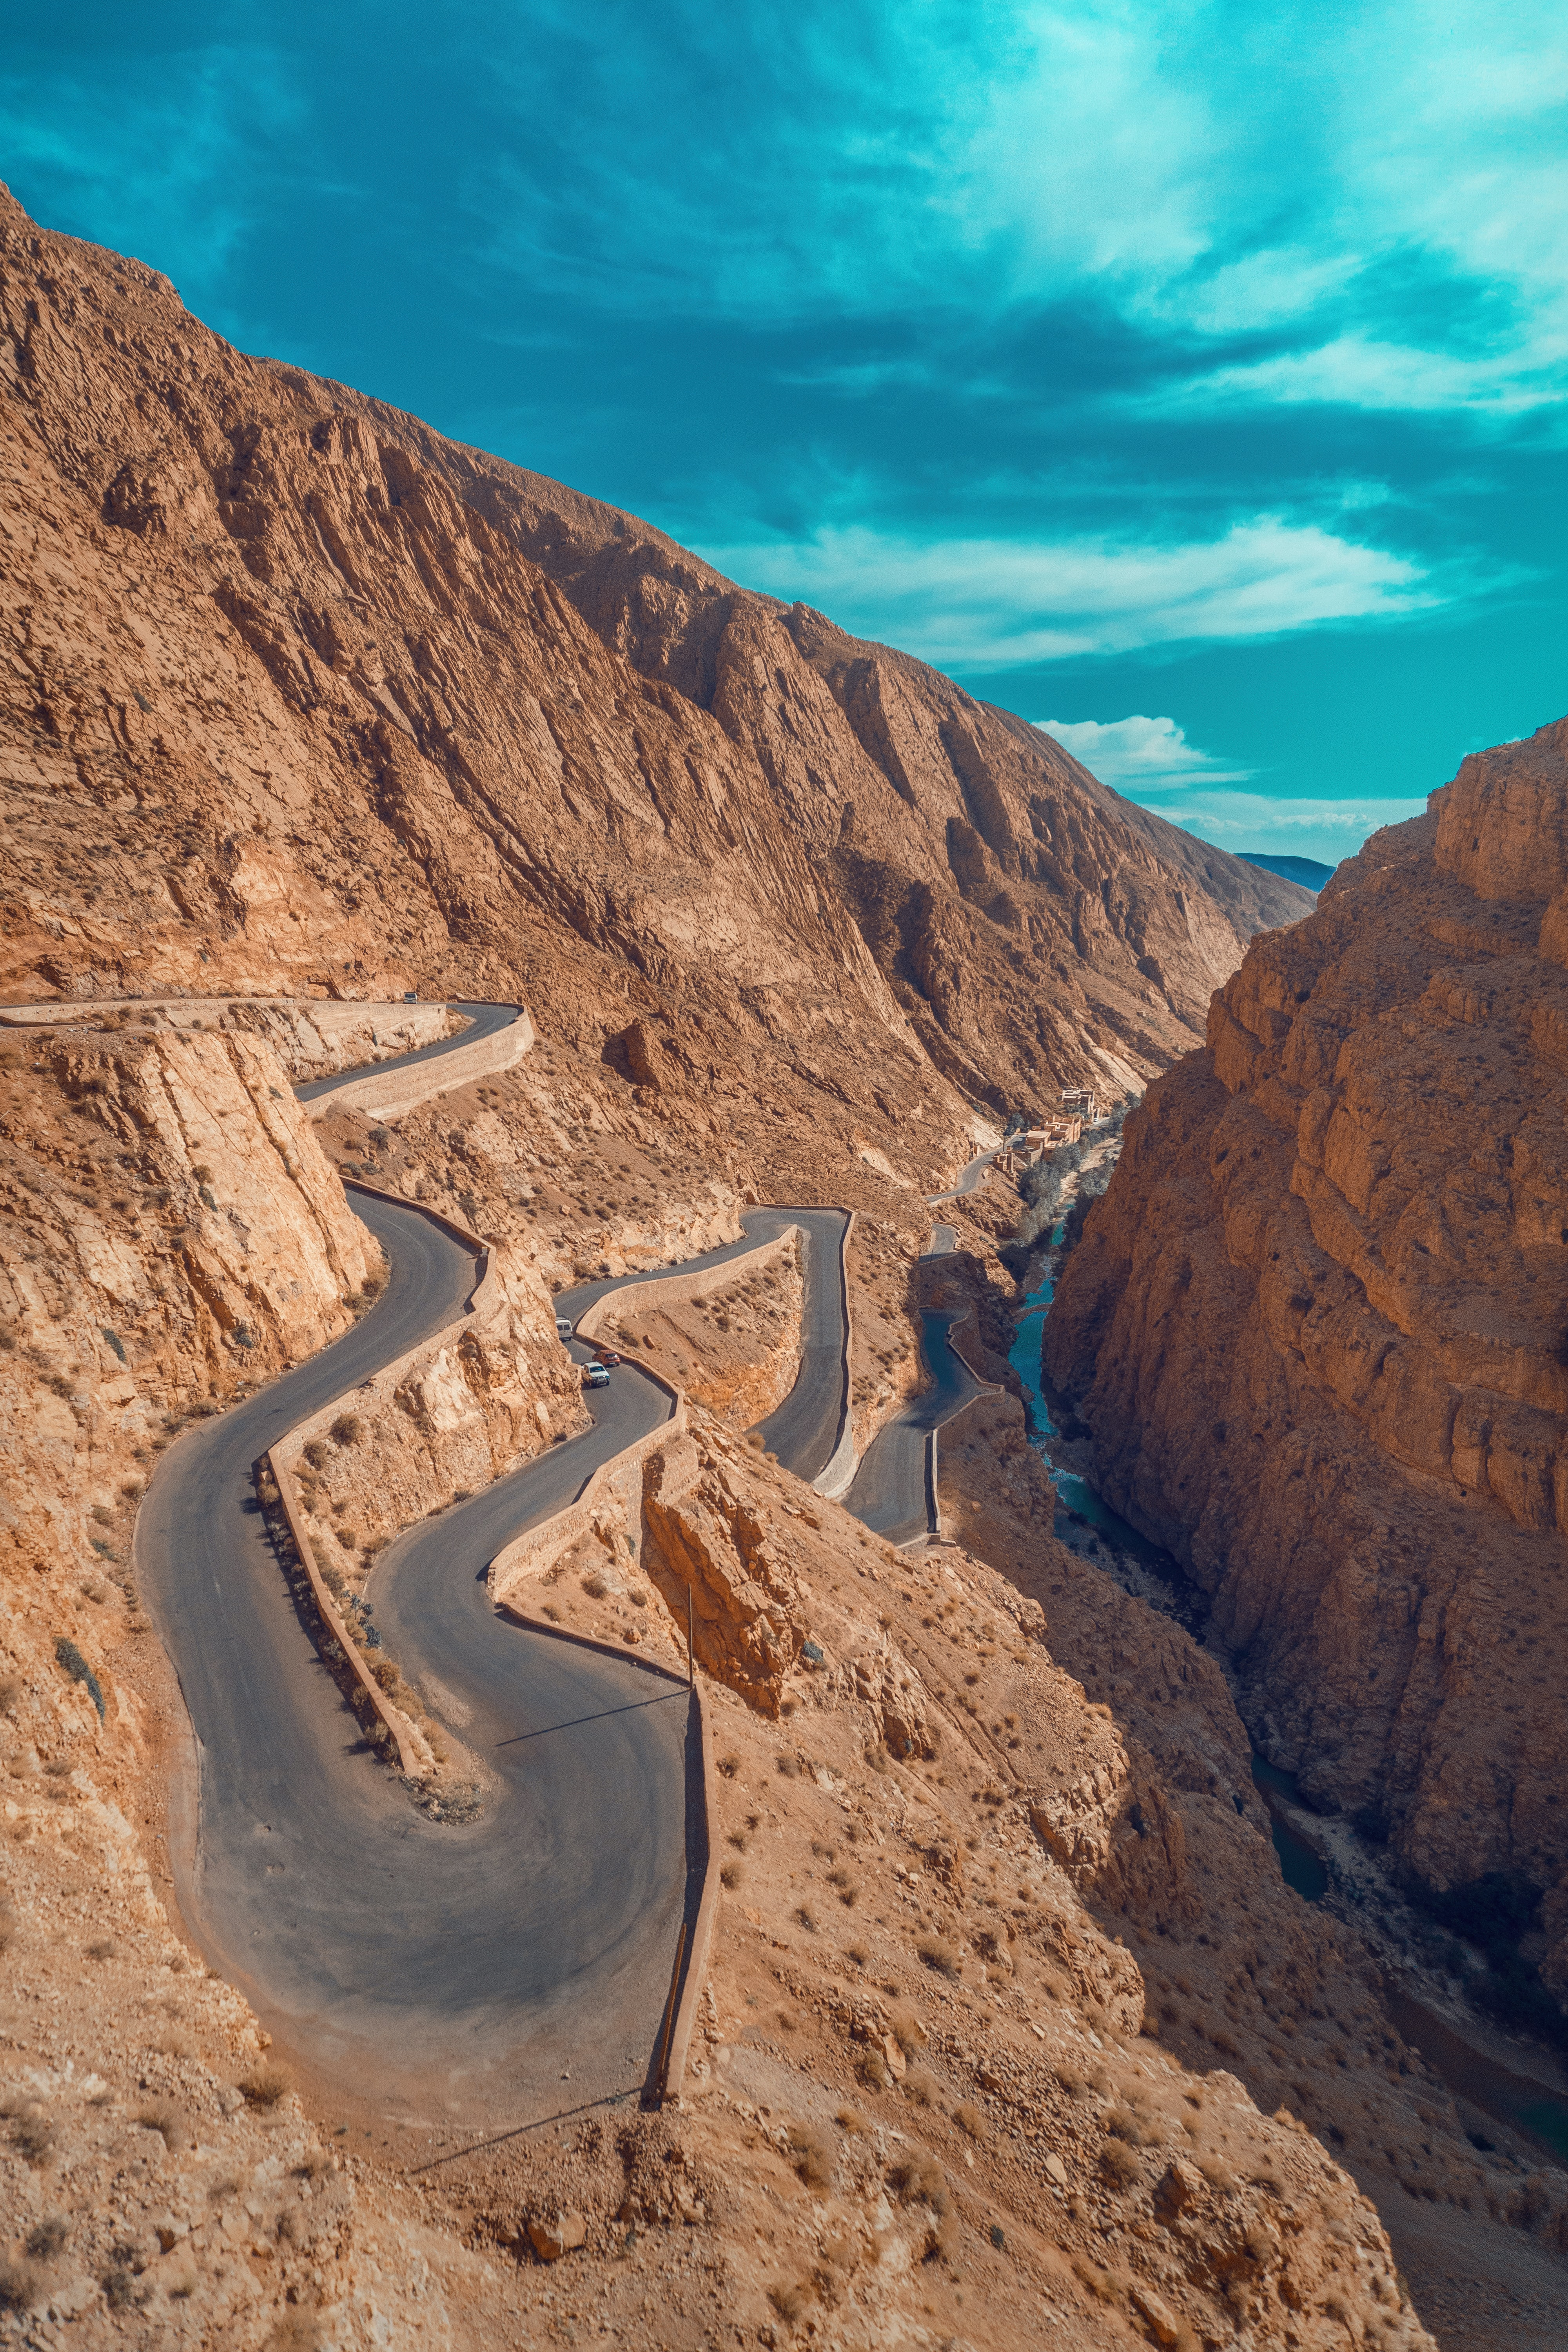 rugged wadi gorges carved out by the Dadès River in Morocco